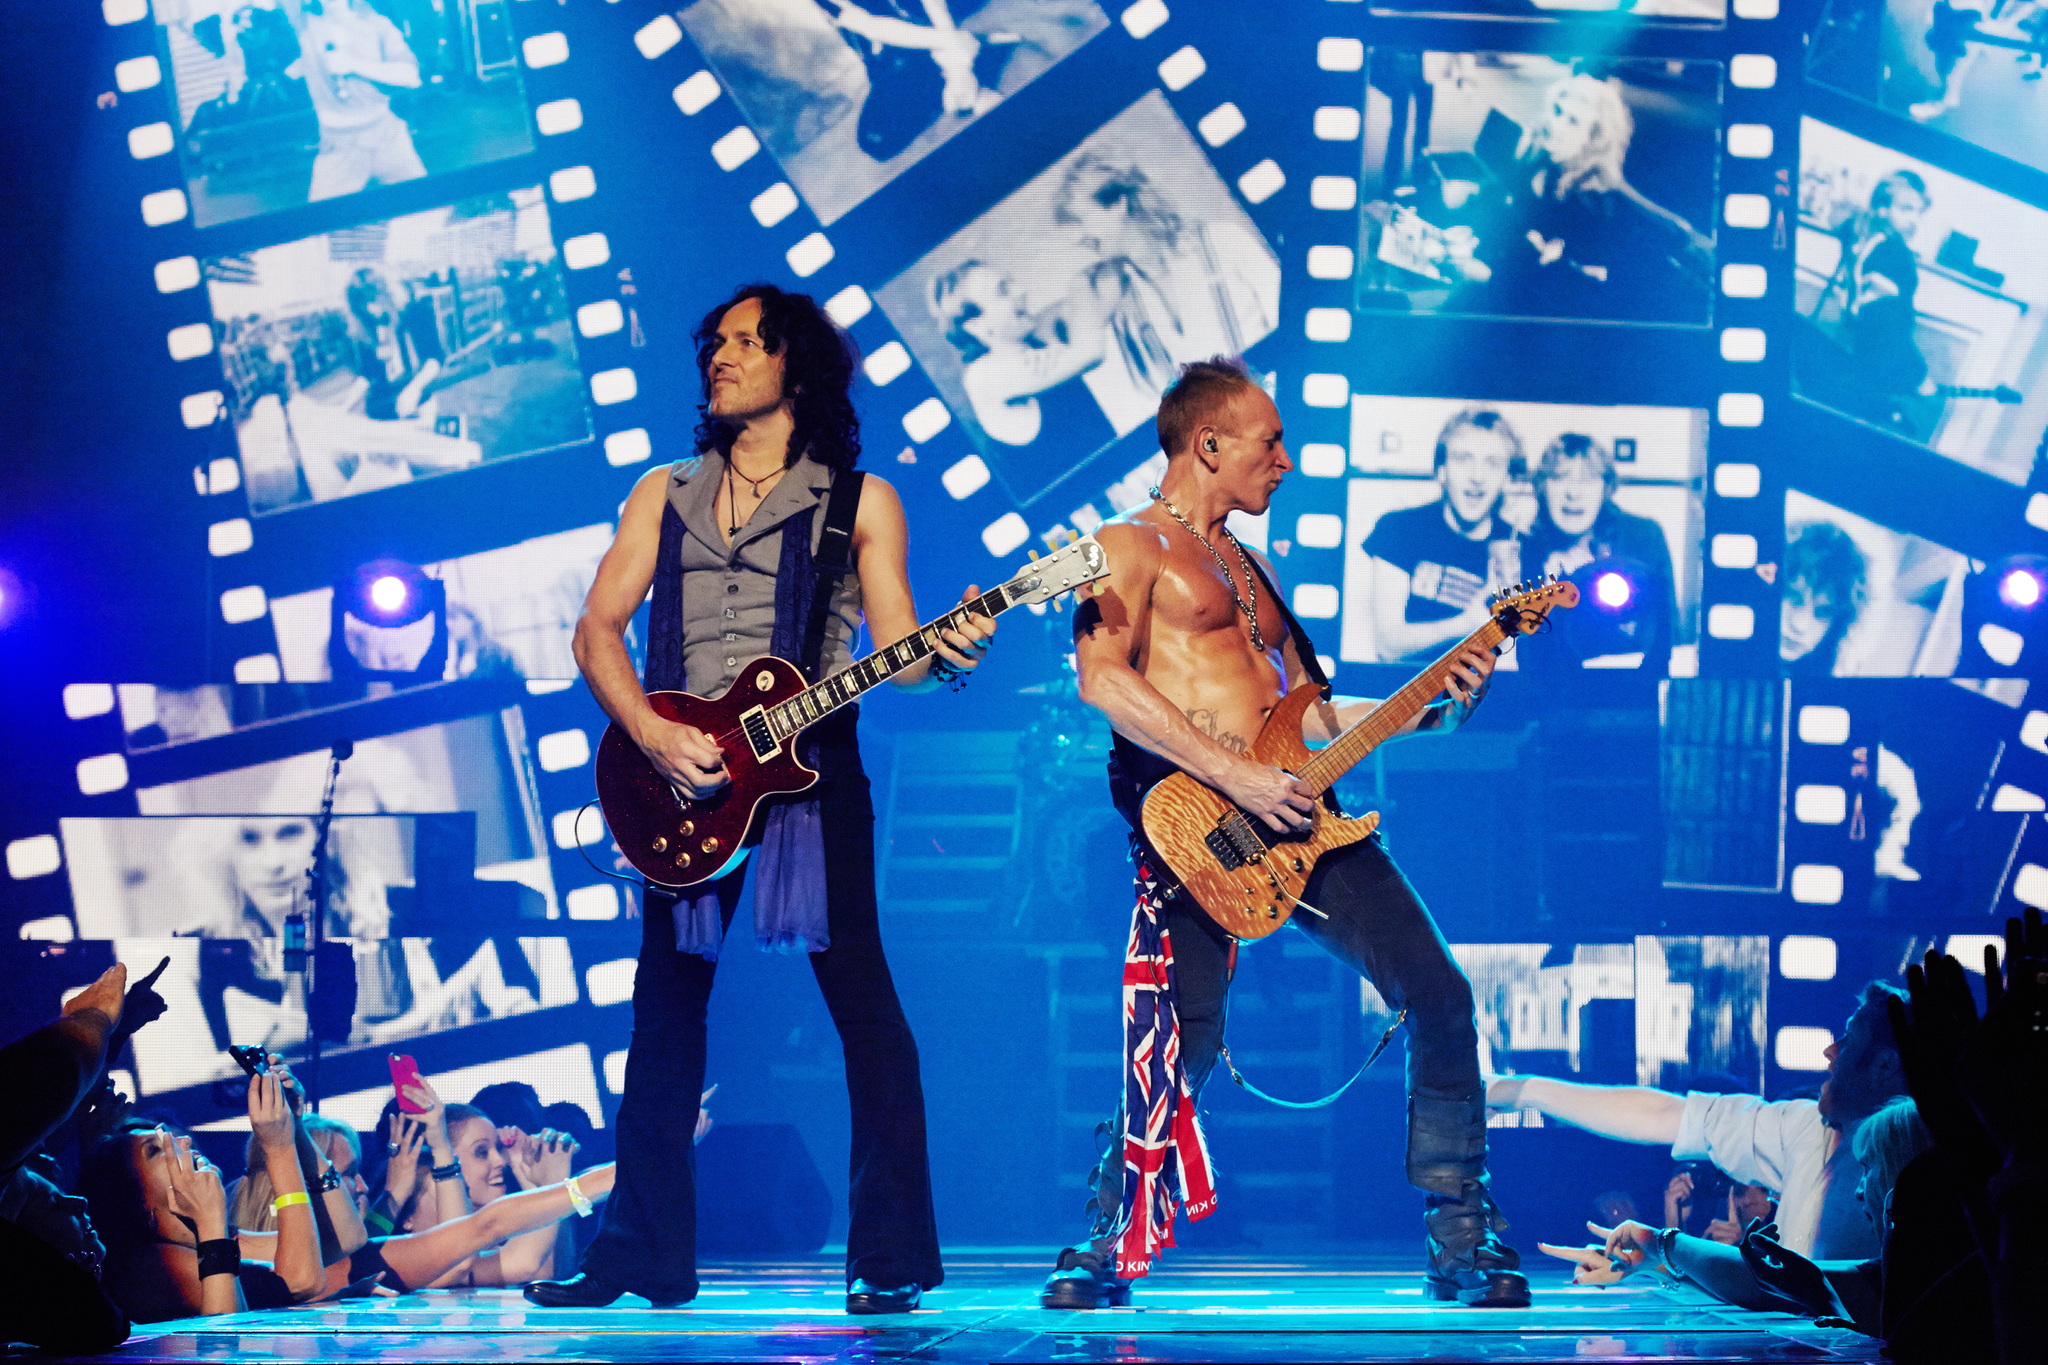 Still of Phil Collins, Vivian Campbell and Phil Collen in Def Leppard Viva! Hysteria Concert (2013)